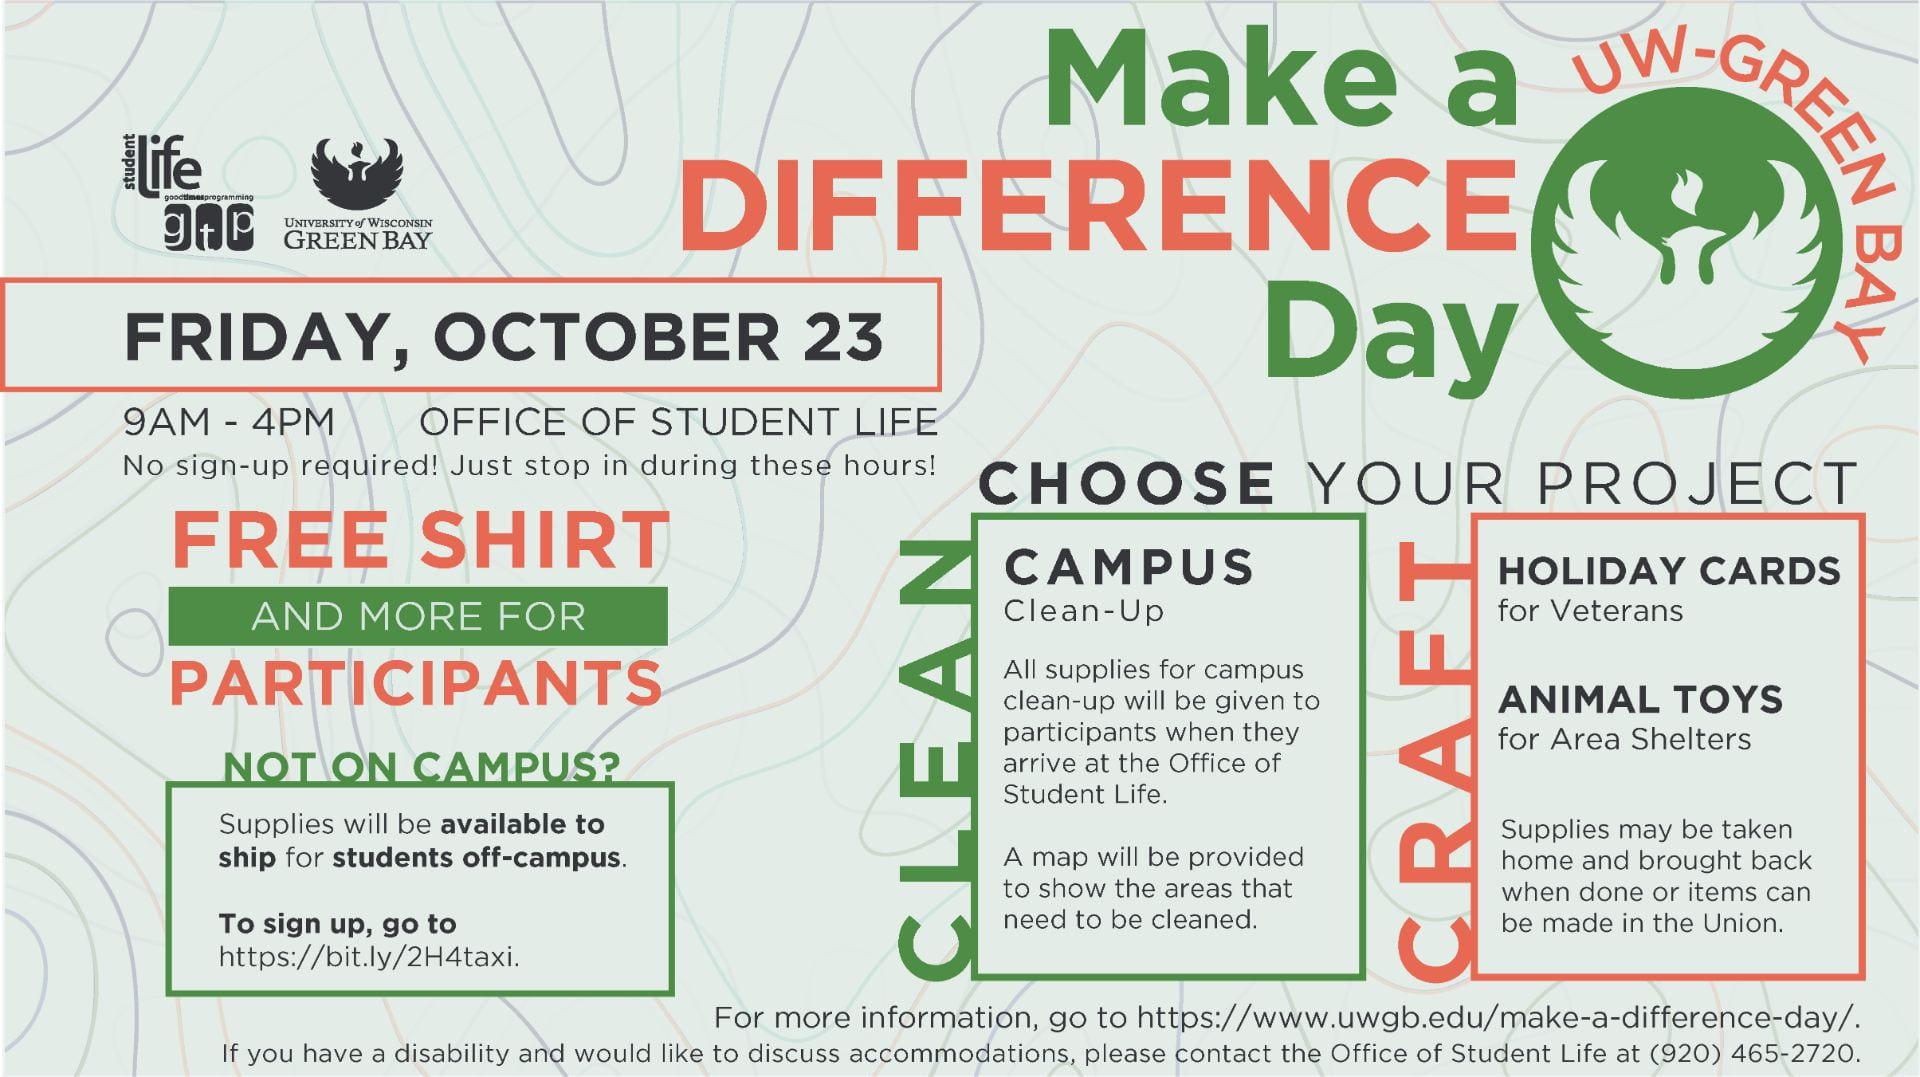 Make a Difference Day Poster